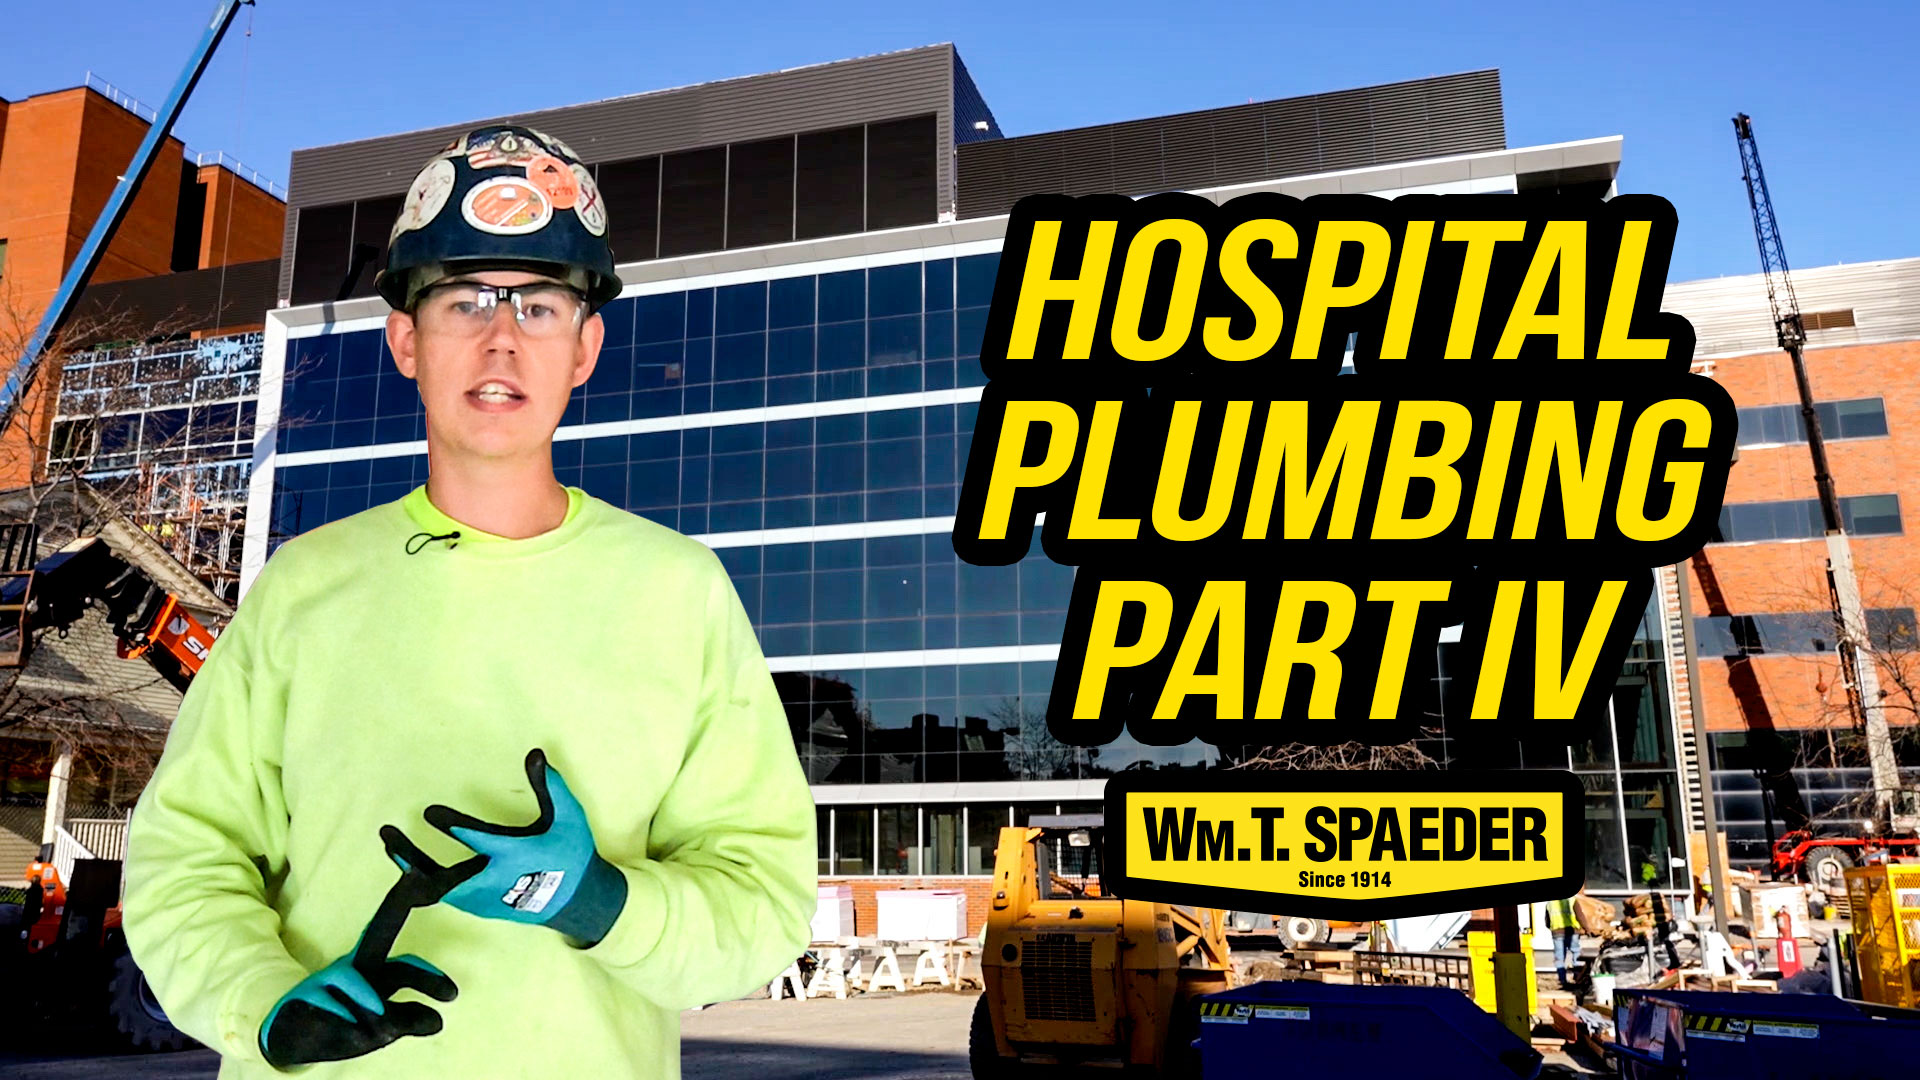 Project Showcase: Hospital Plumbing Part 4